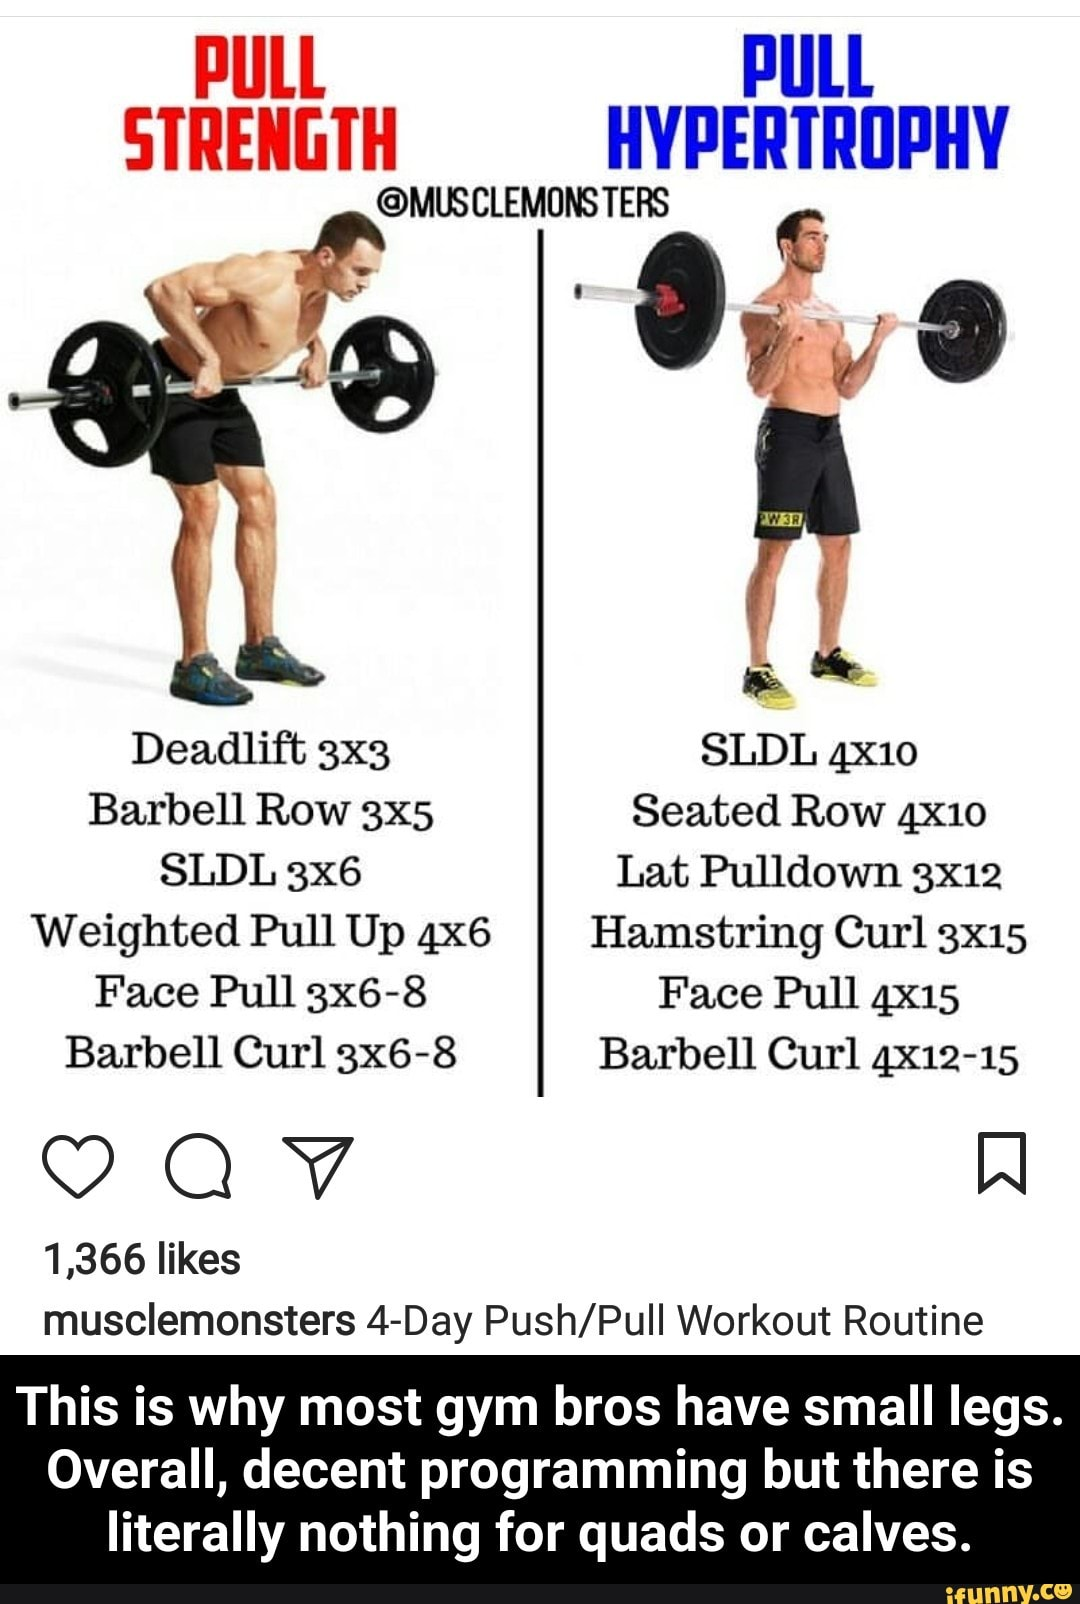 SLDL 3x6 Lat Pulldown 3x12 Weighted Pull Up 4X6 Hamstring